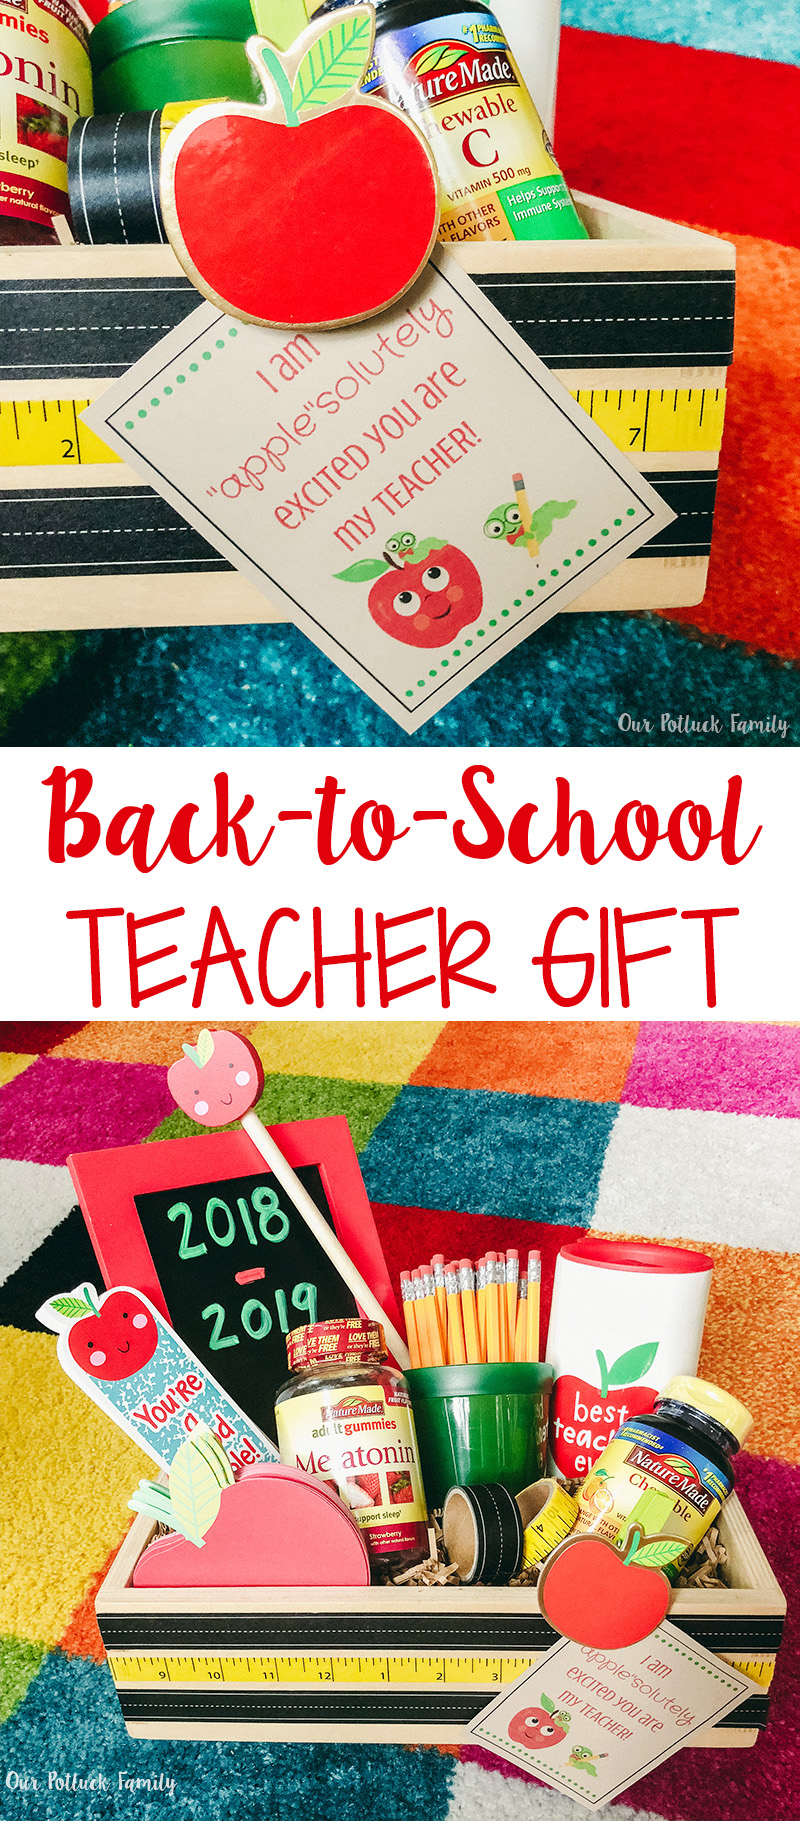 Back-to-School Teacher Gift Basket